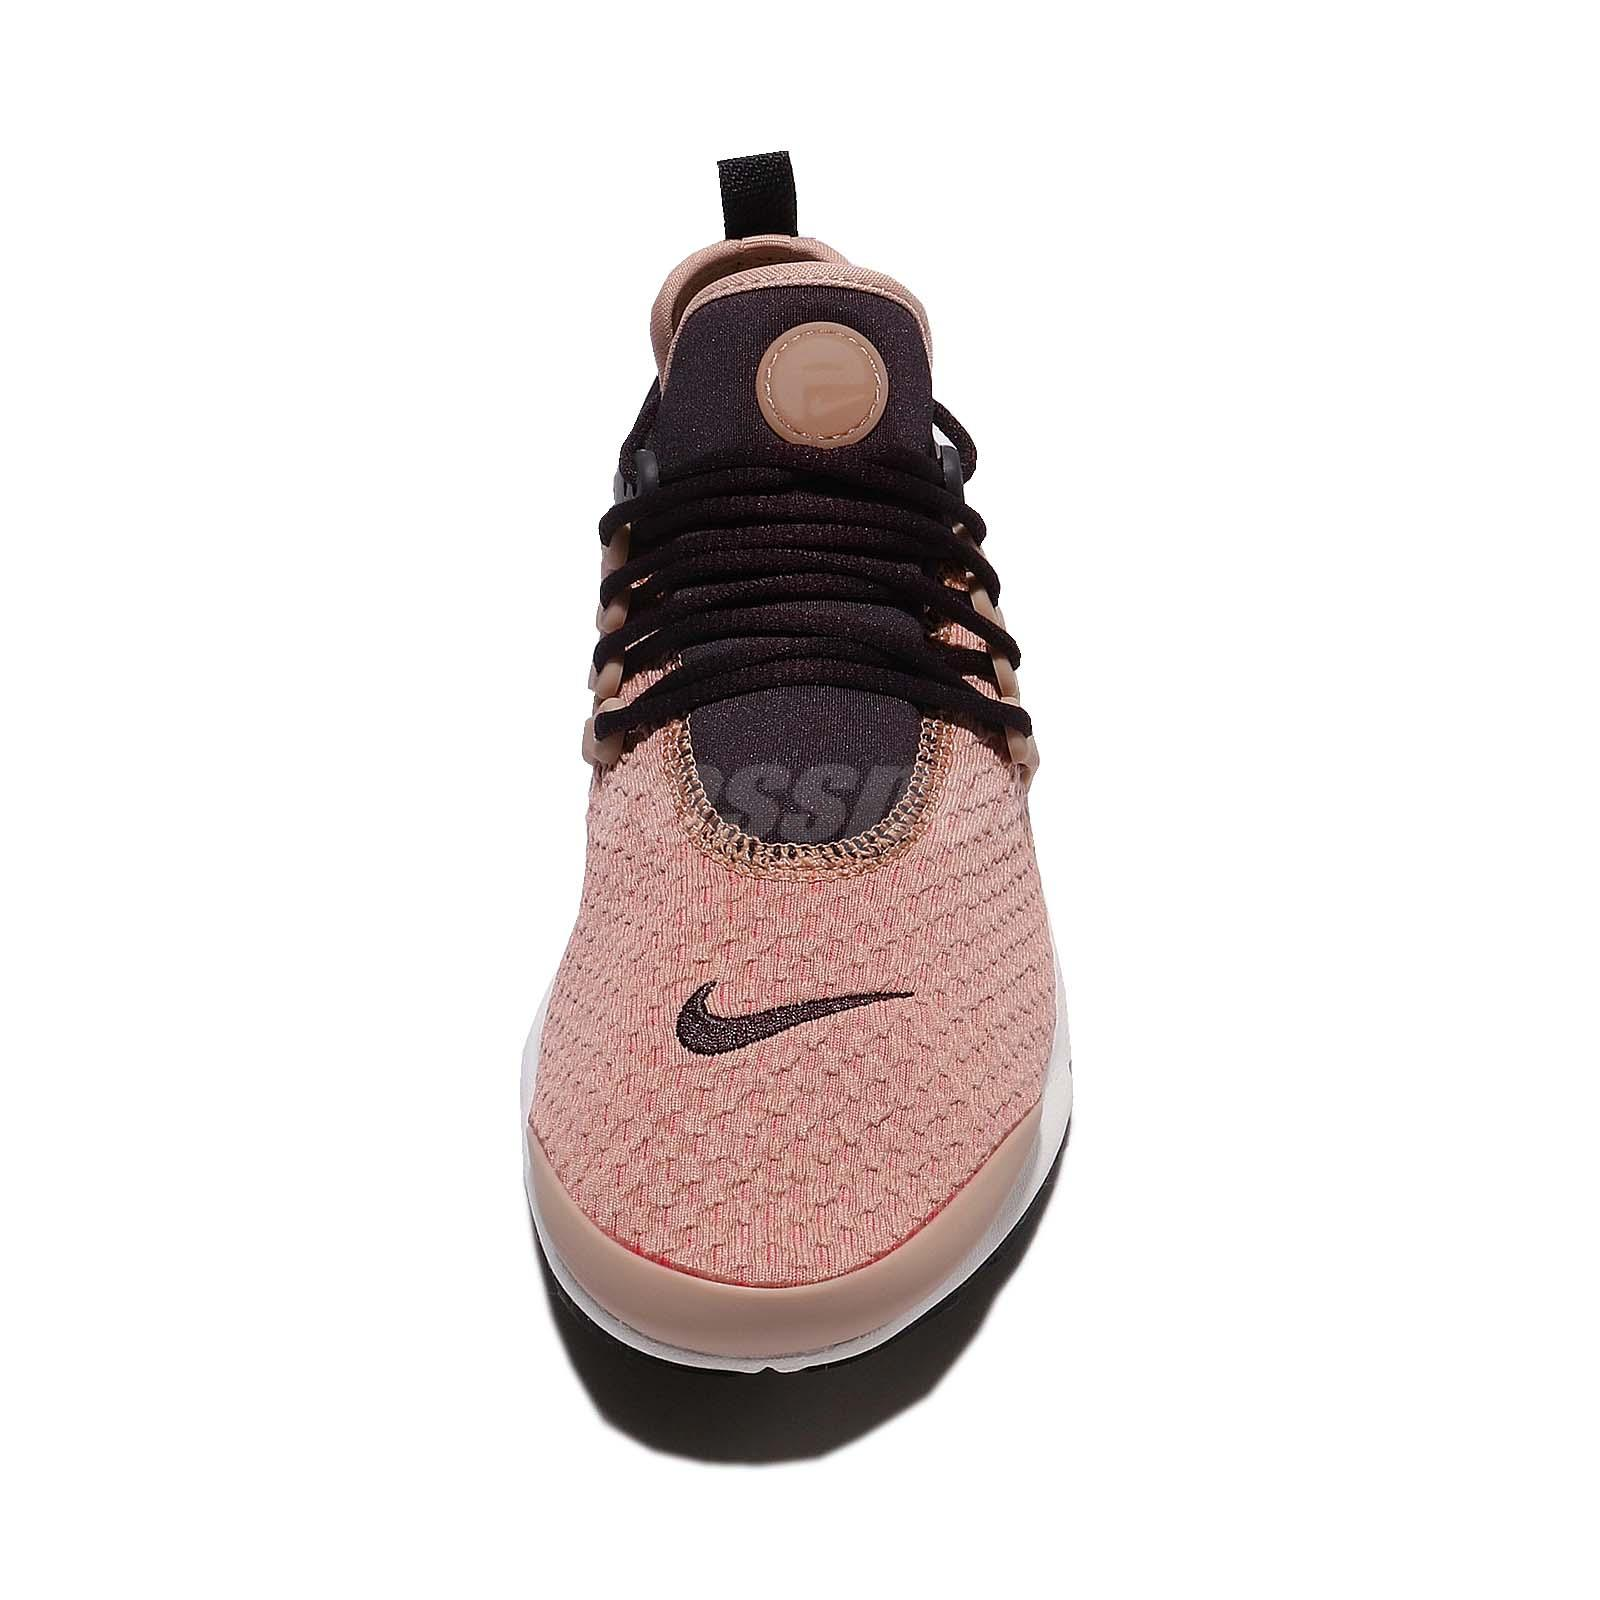 newest a3997 67b97 Details about Nike Wmns Air Presto Port Wine Particle Pink Women Shoes  Sneakers 878068-604